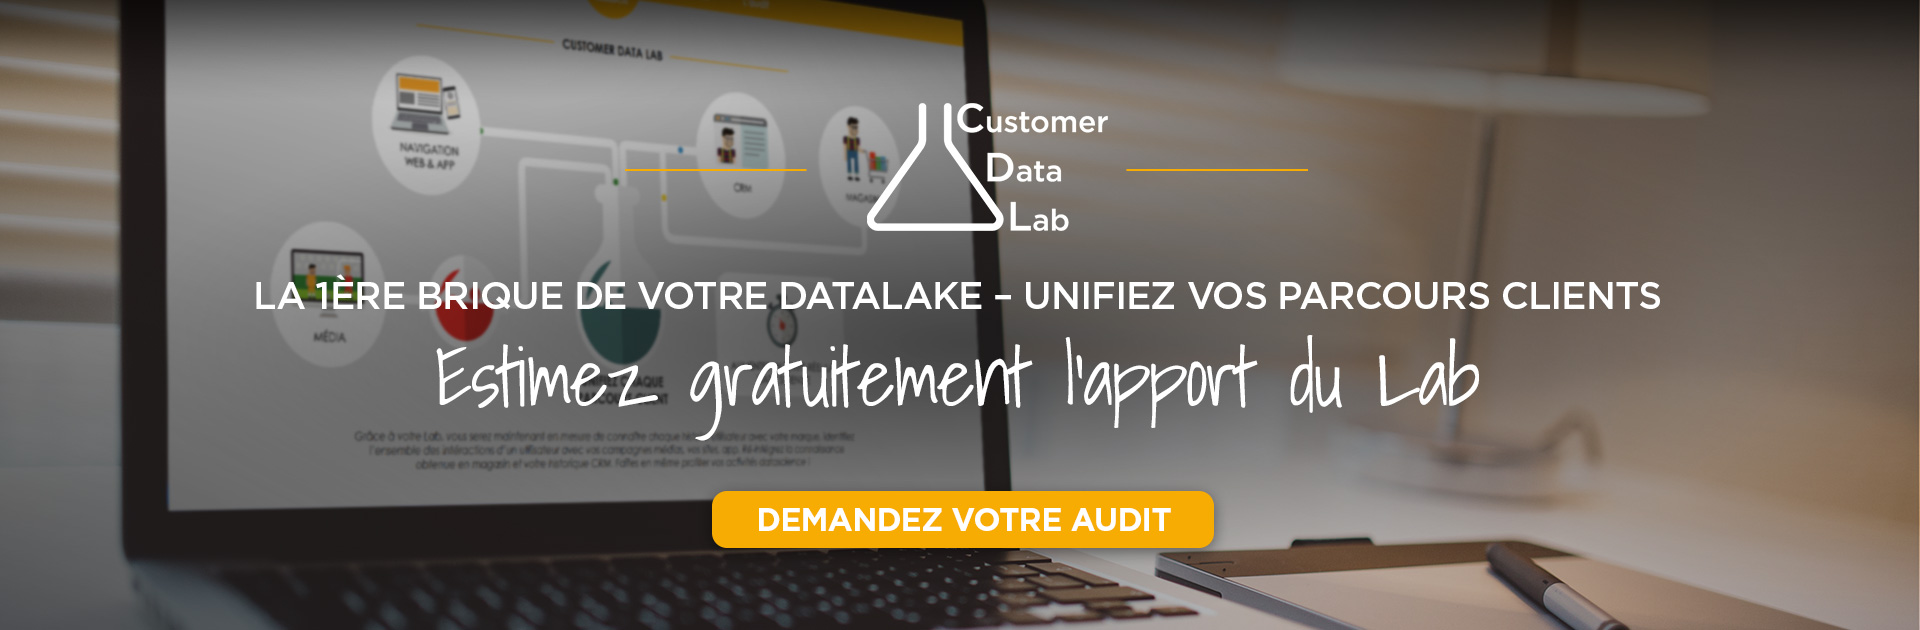 Site Customer Data Lab